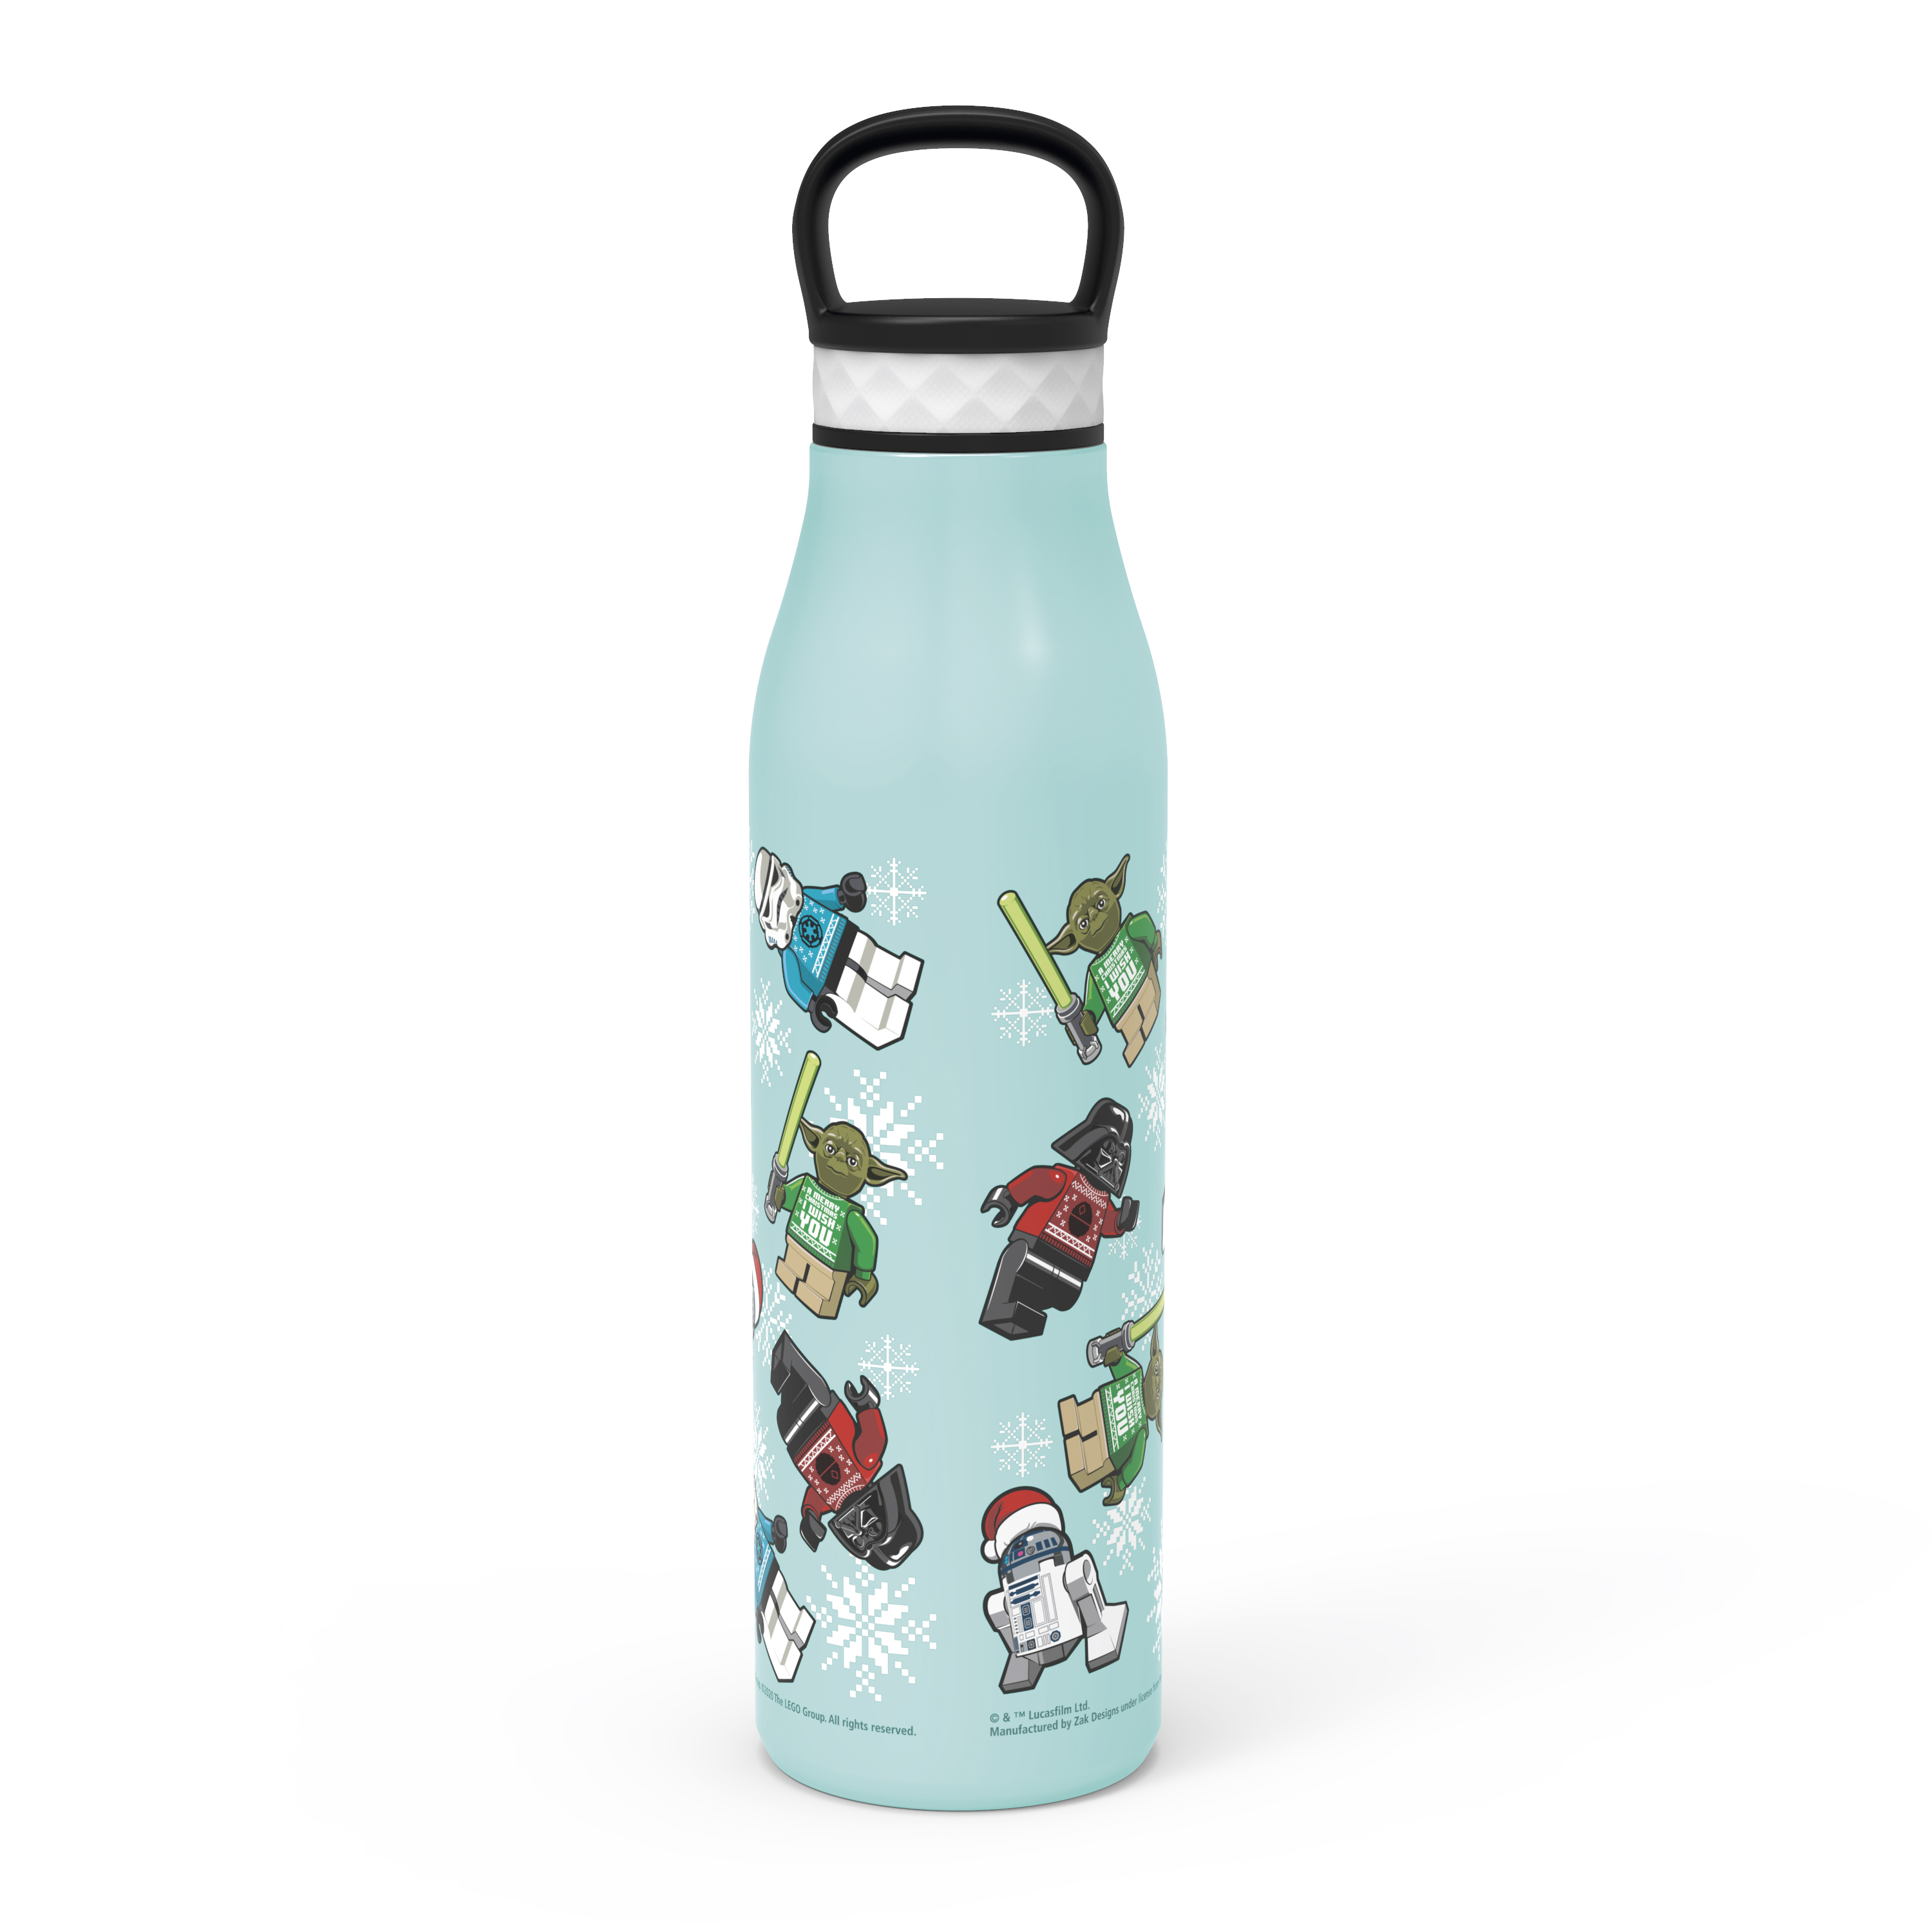 Lego Star Wars 20 ounce Stainless Steel Vacuum Insulated Water Bottle, R2-D2, Yoda and Darth Vader slideshow image 3